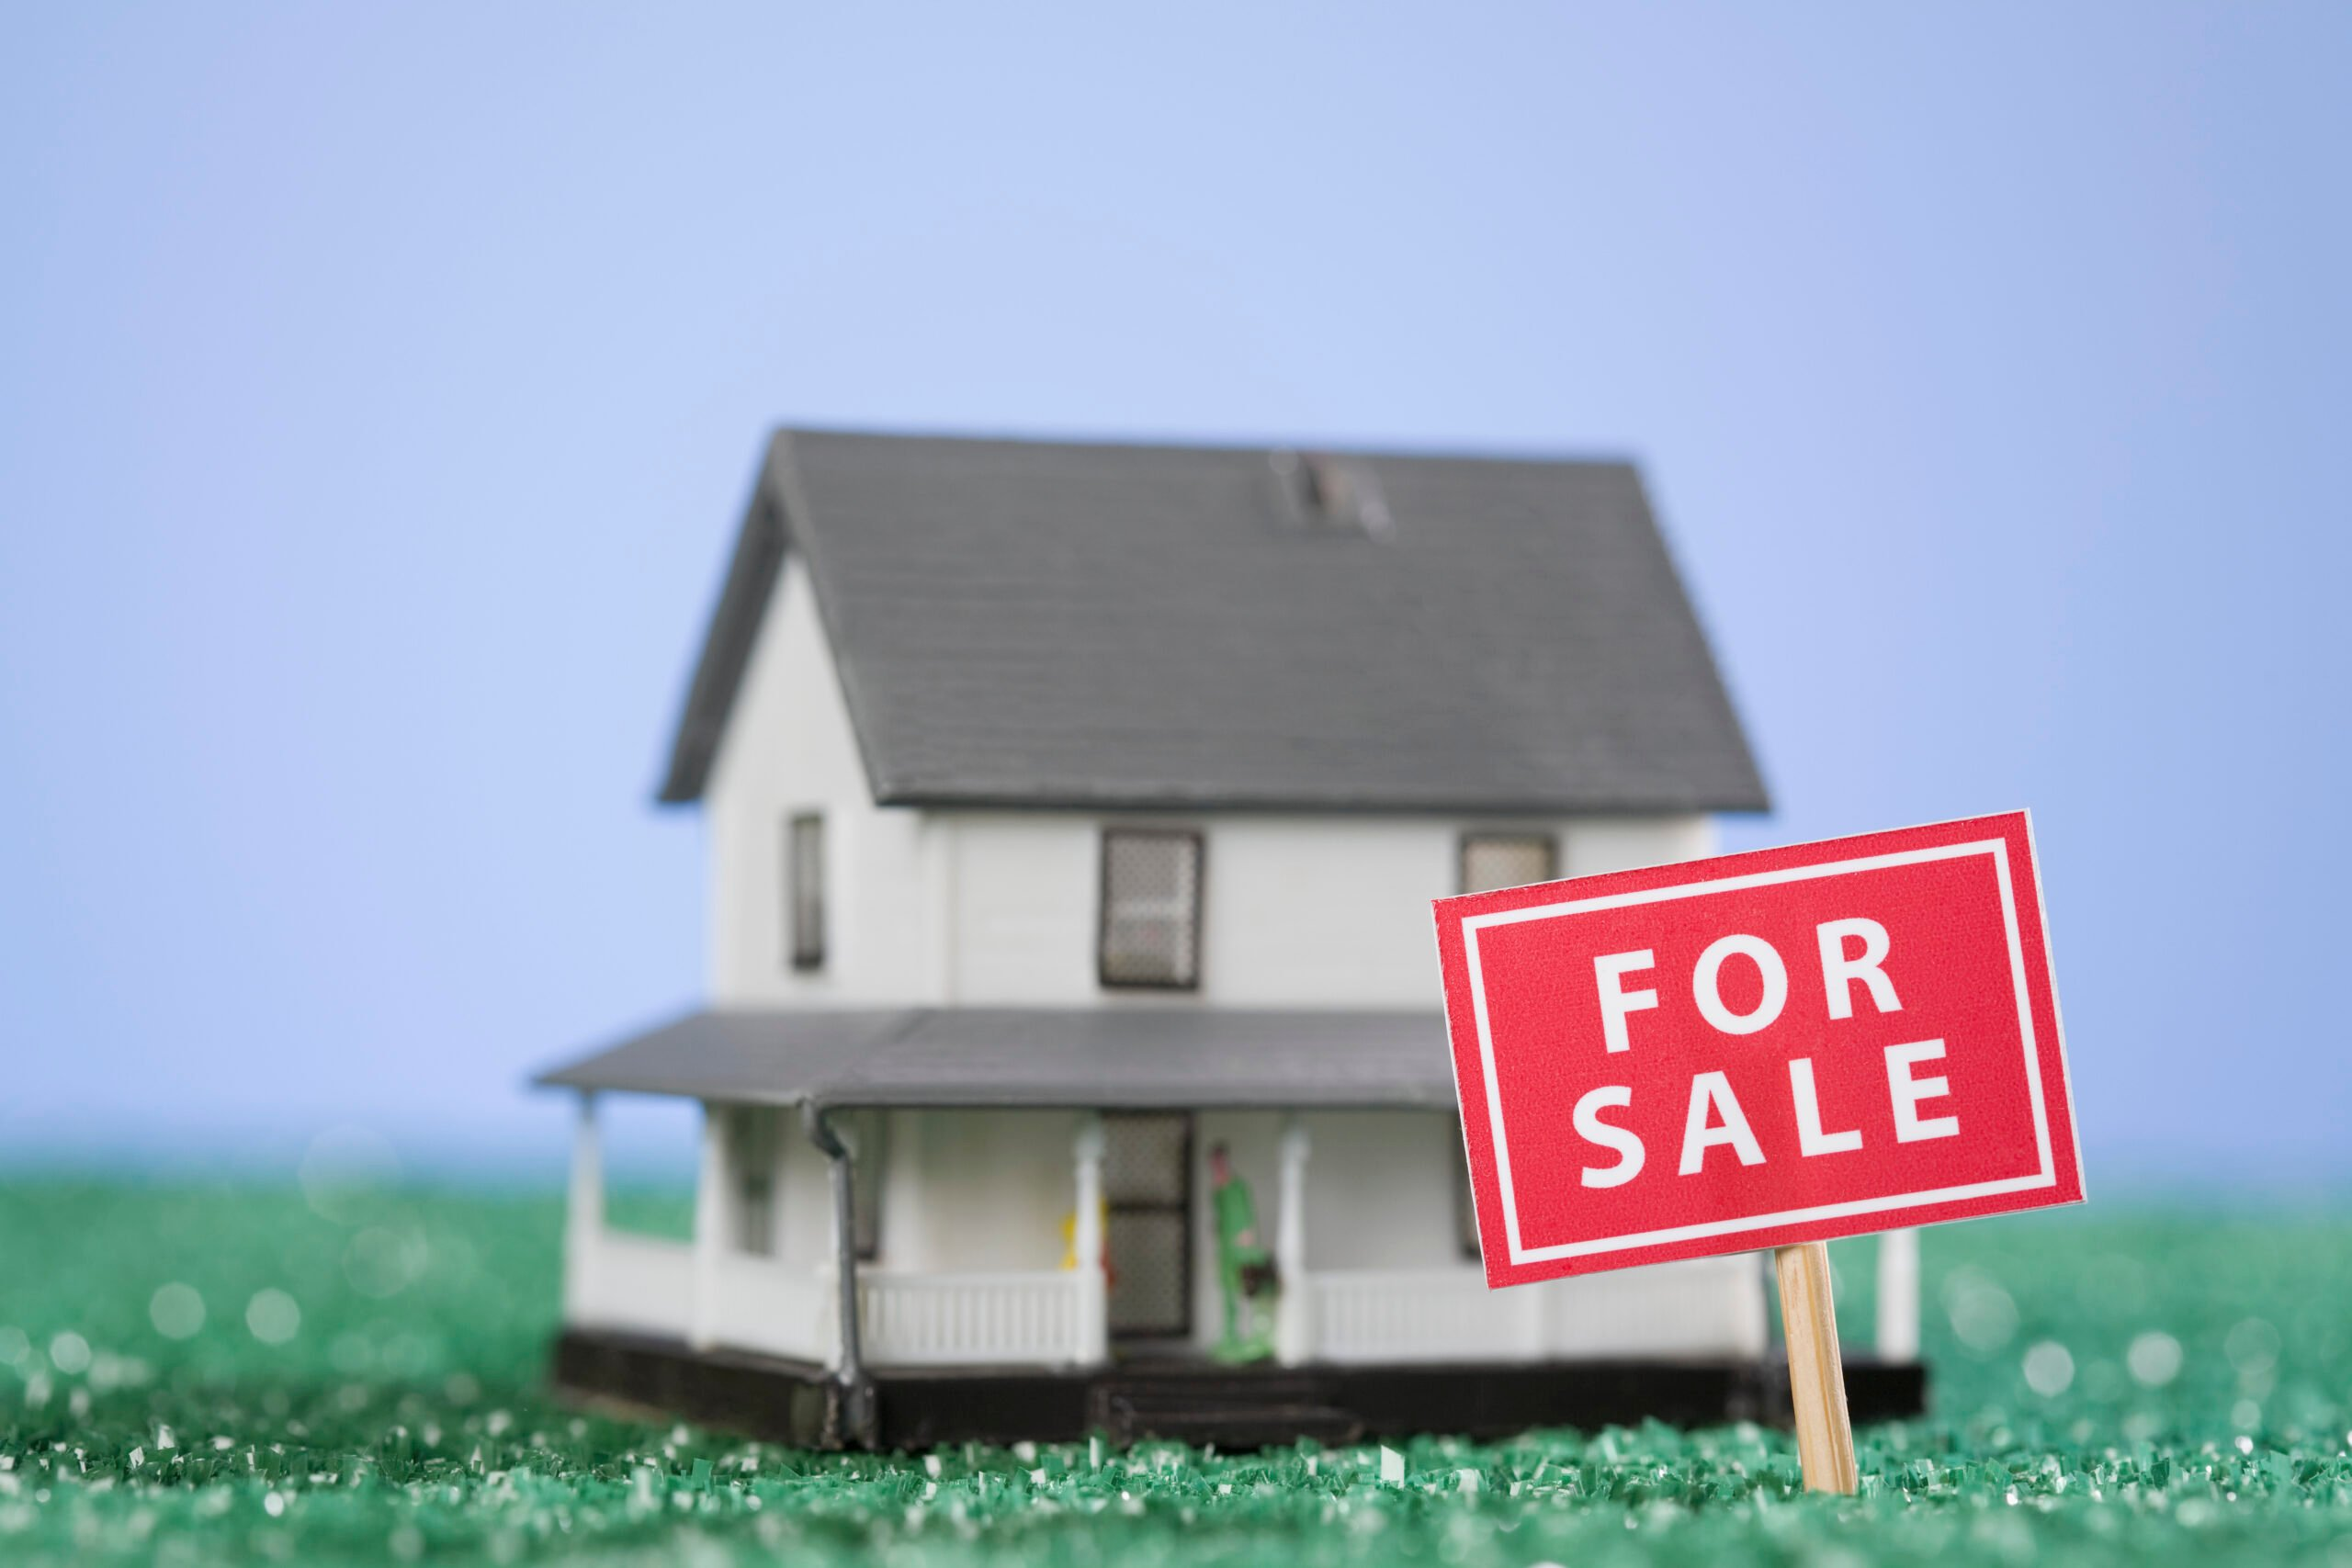 Landlords are ditching their rental properties and cashing out